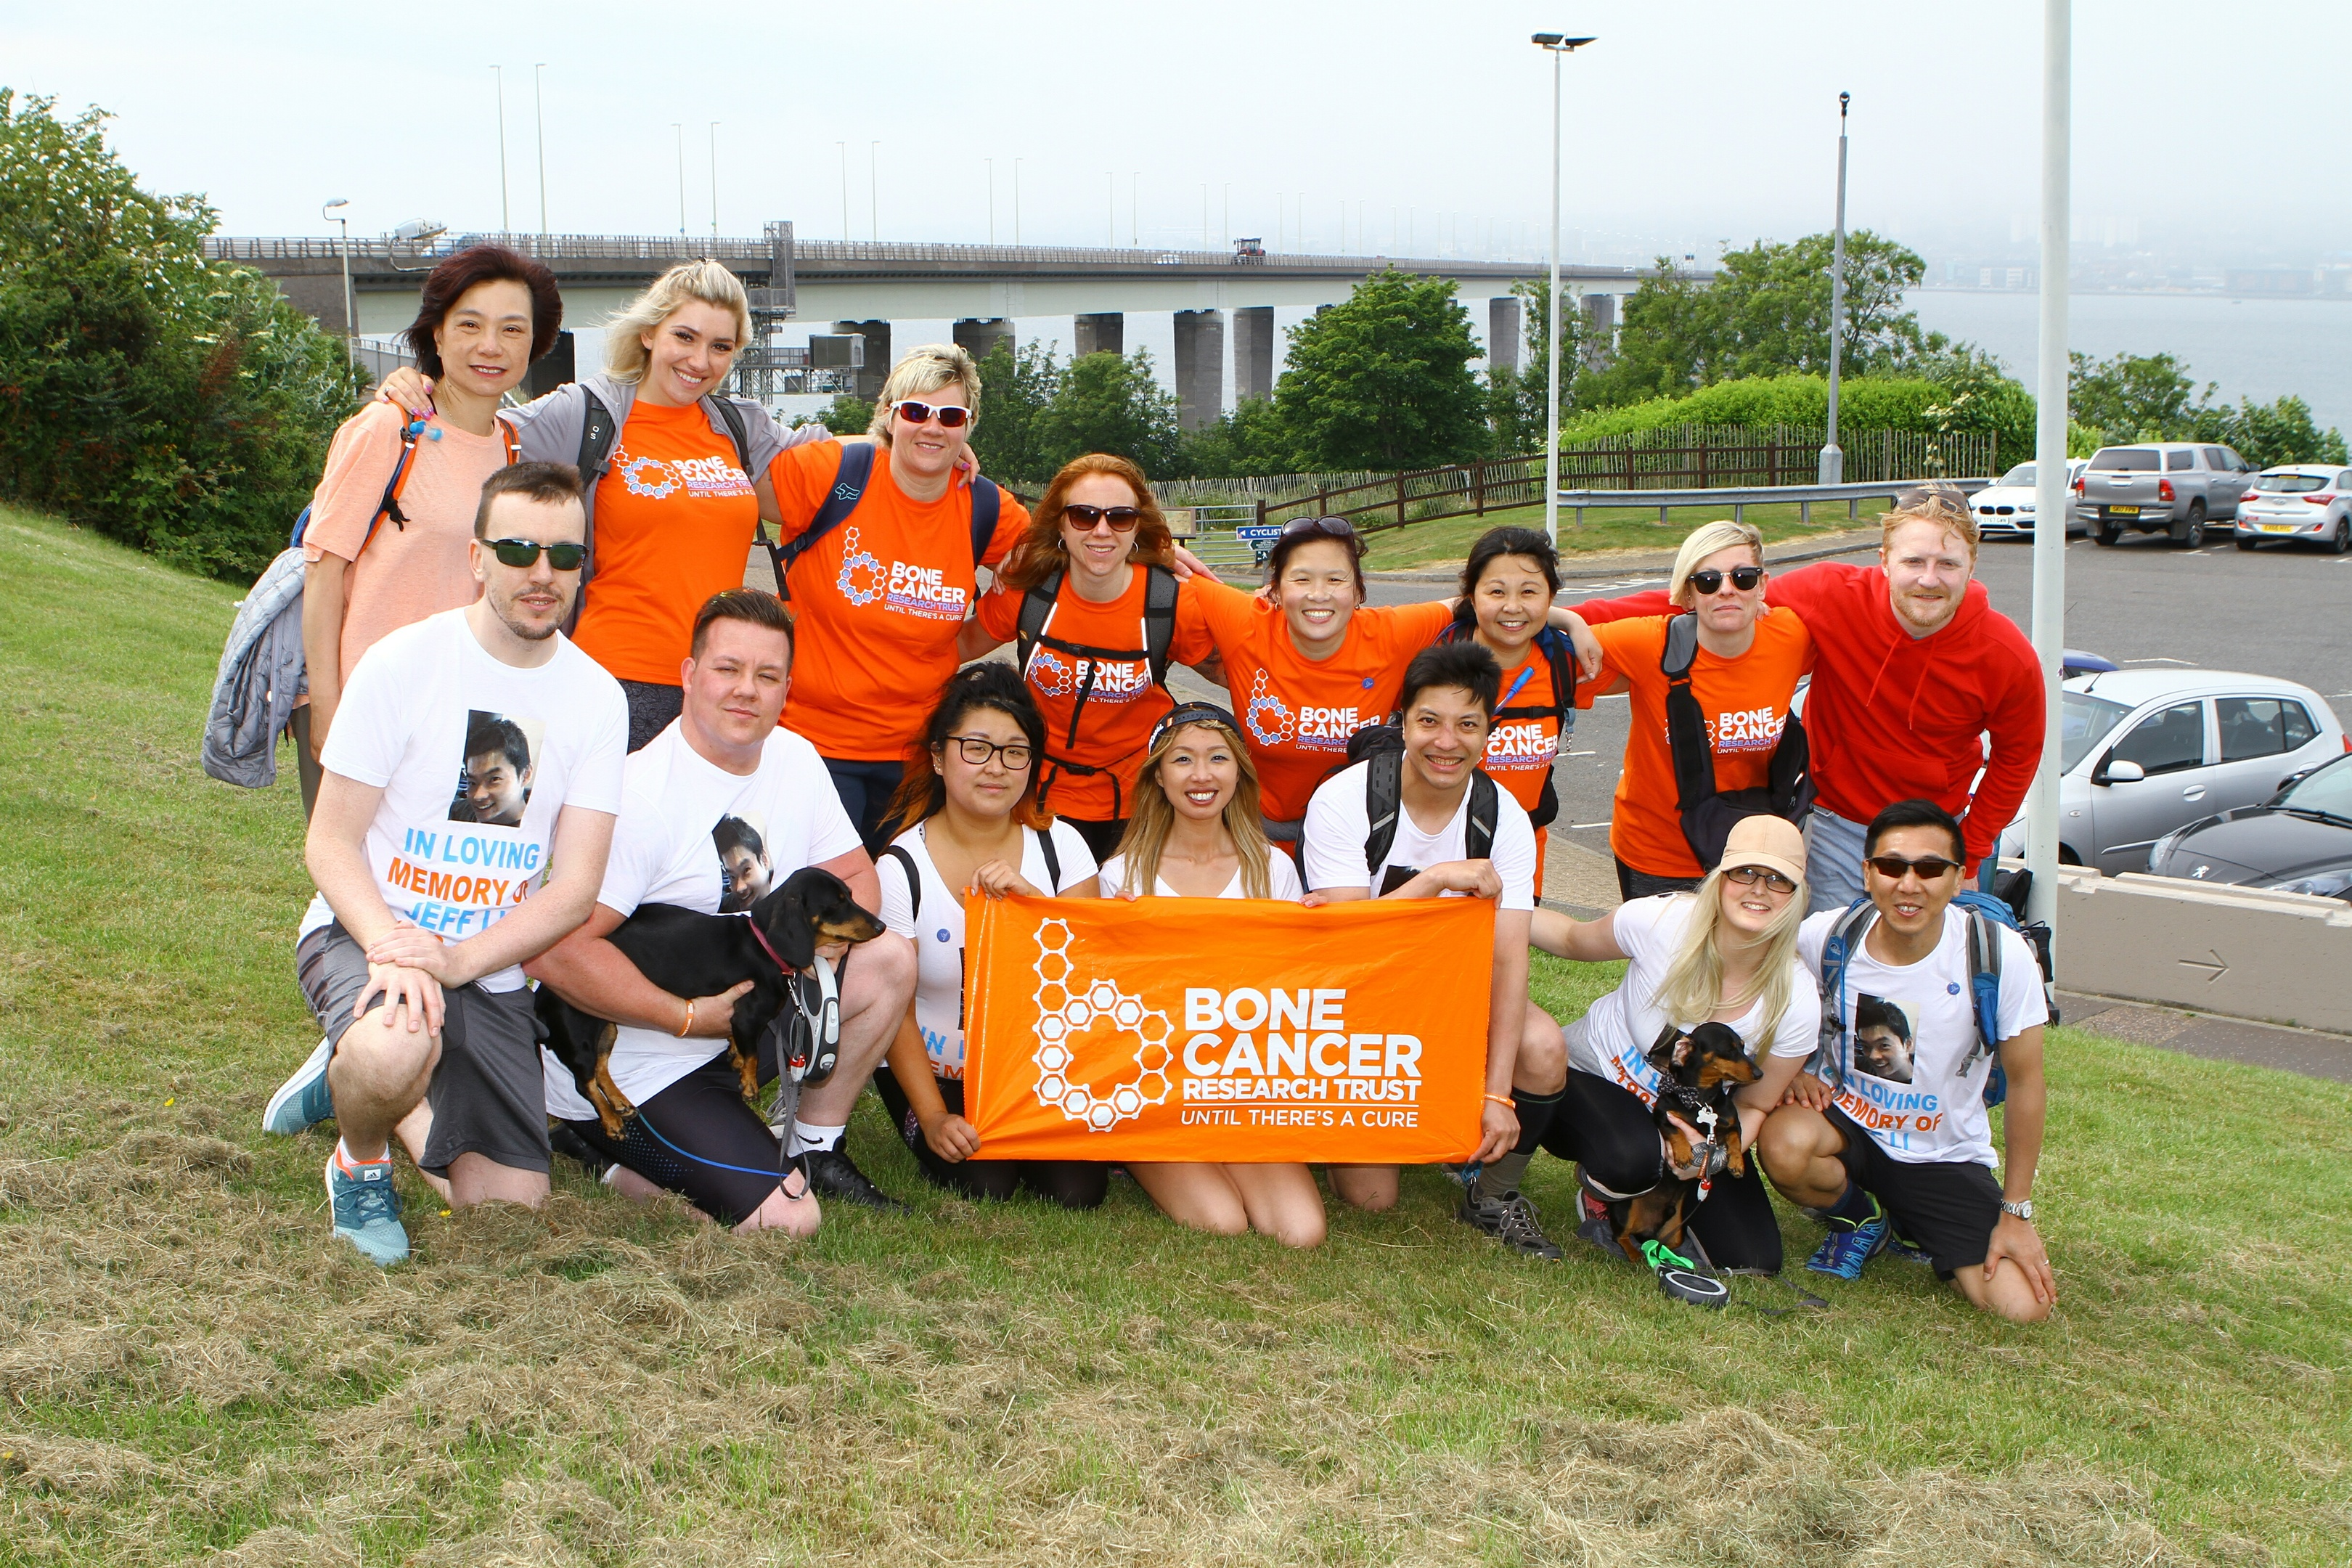 Mei Li has walked from Dundee to St Andrews in memory of her brother Jeff, who died from a rare form of bone cancer.